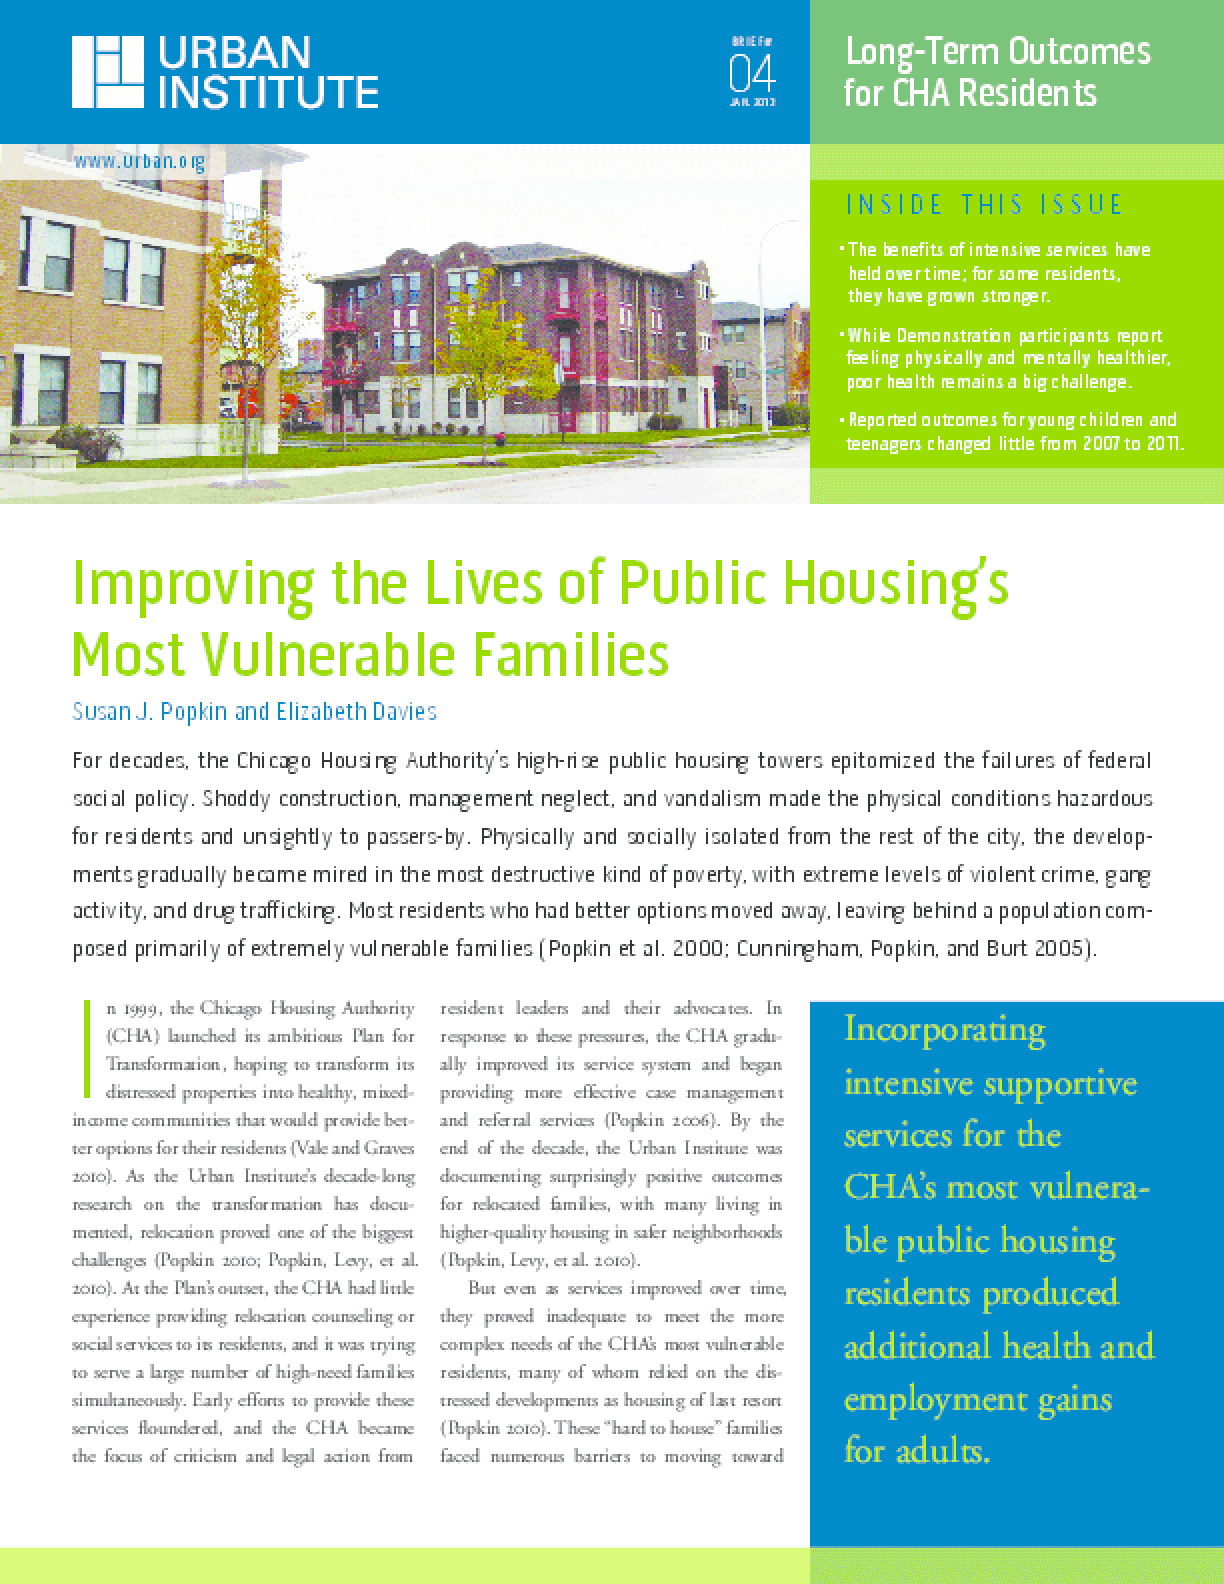 Improving the Lives of Public Housing's Most Vulnerable Families